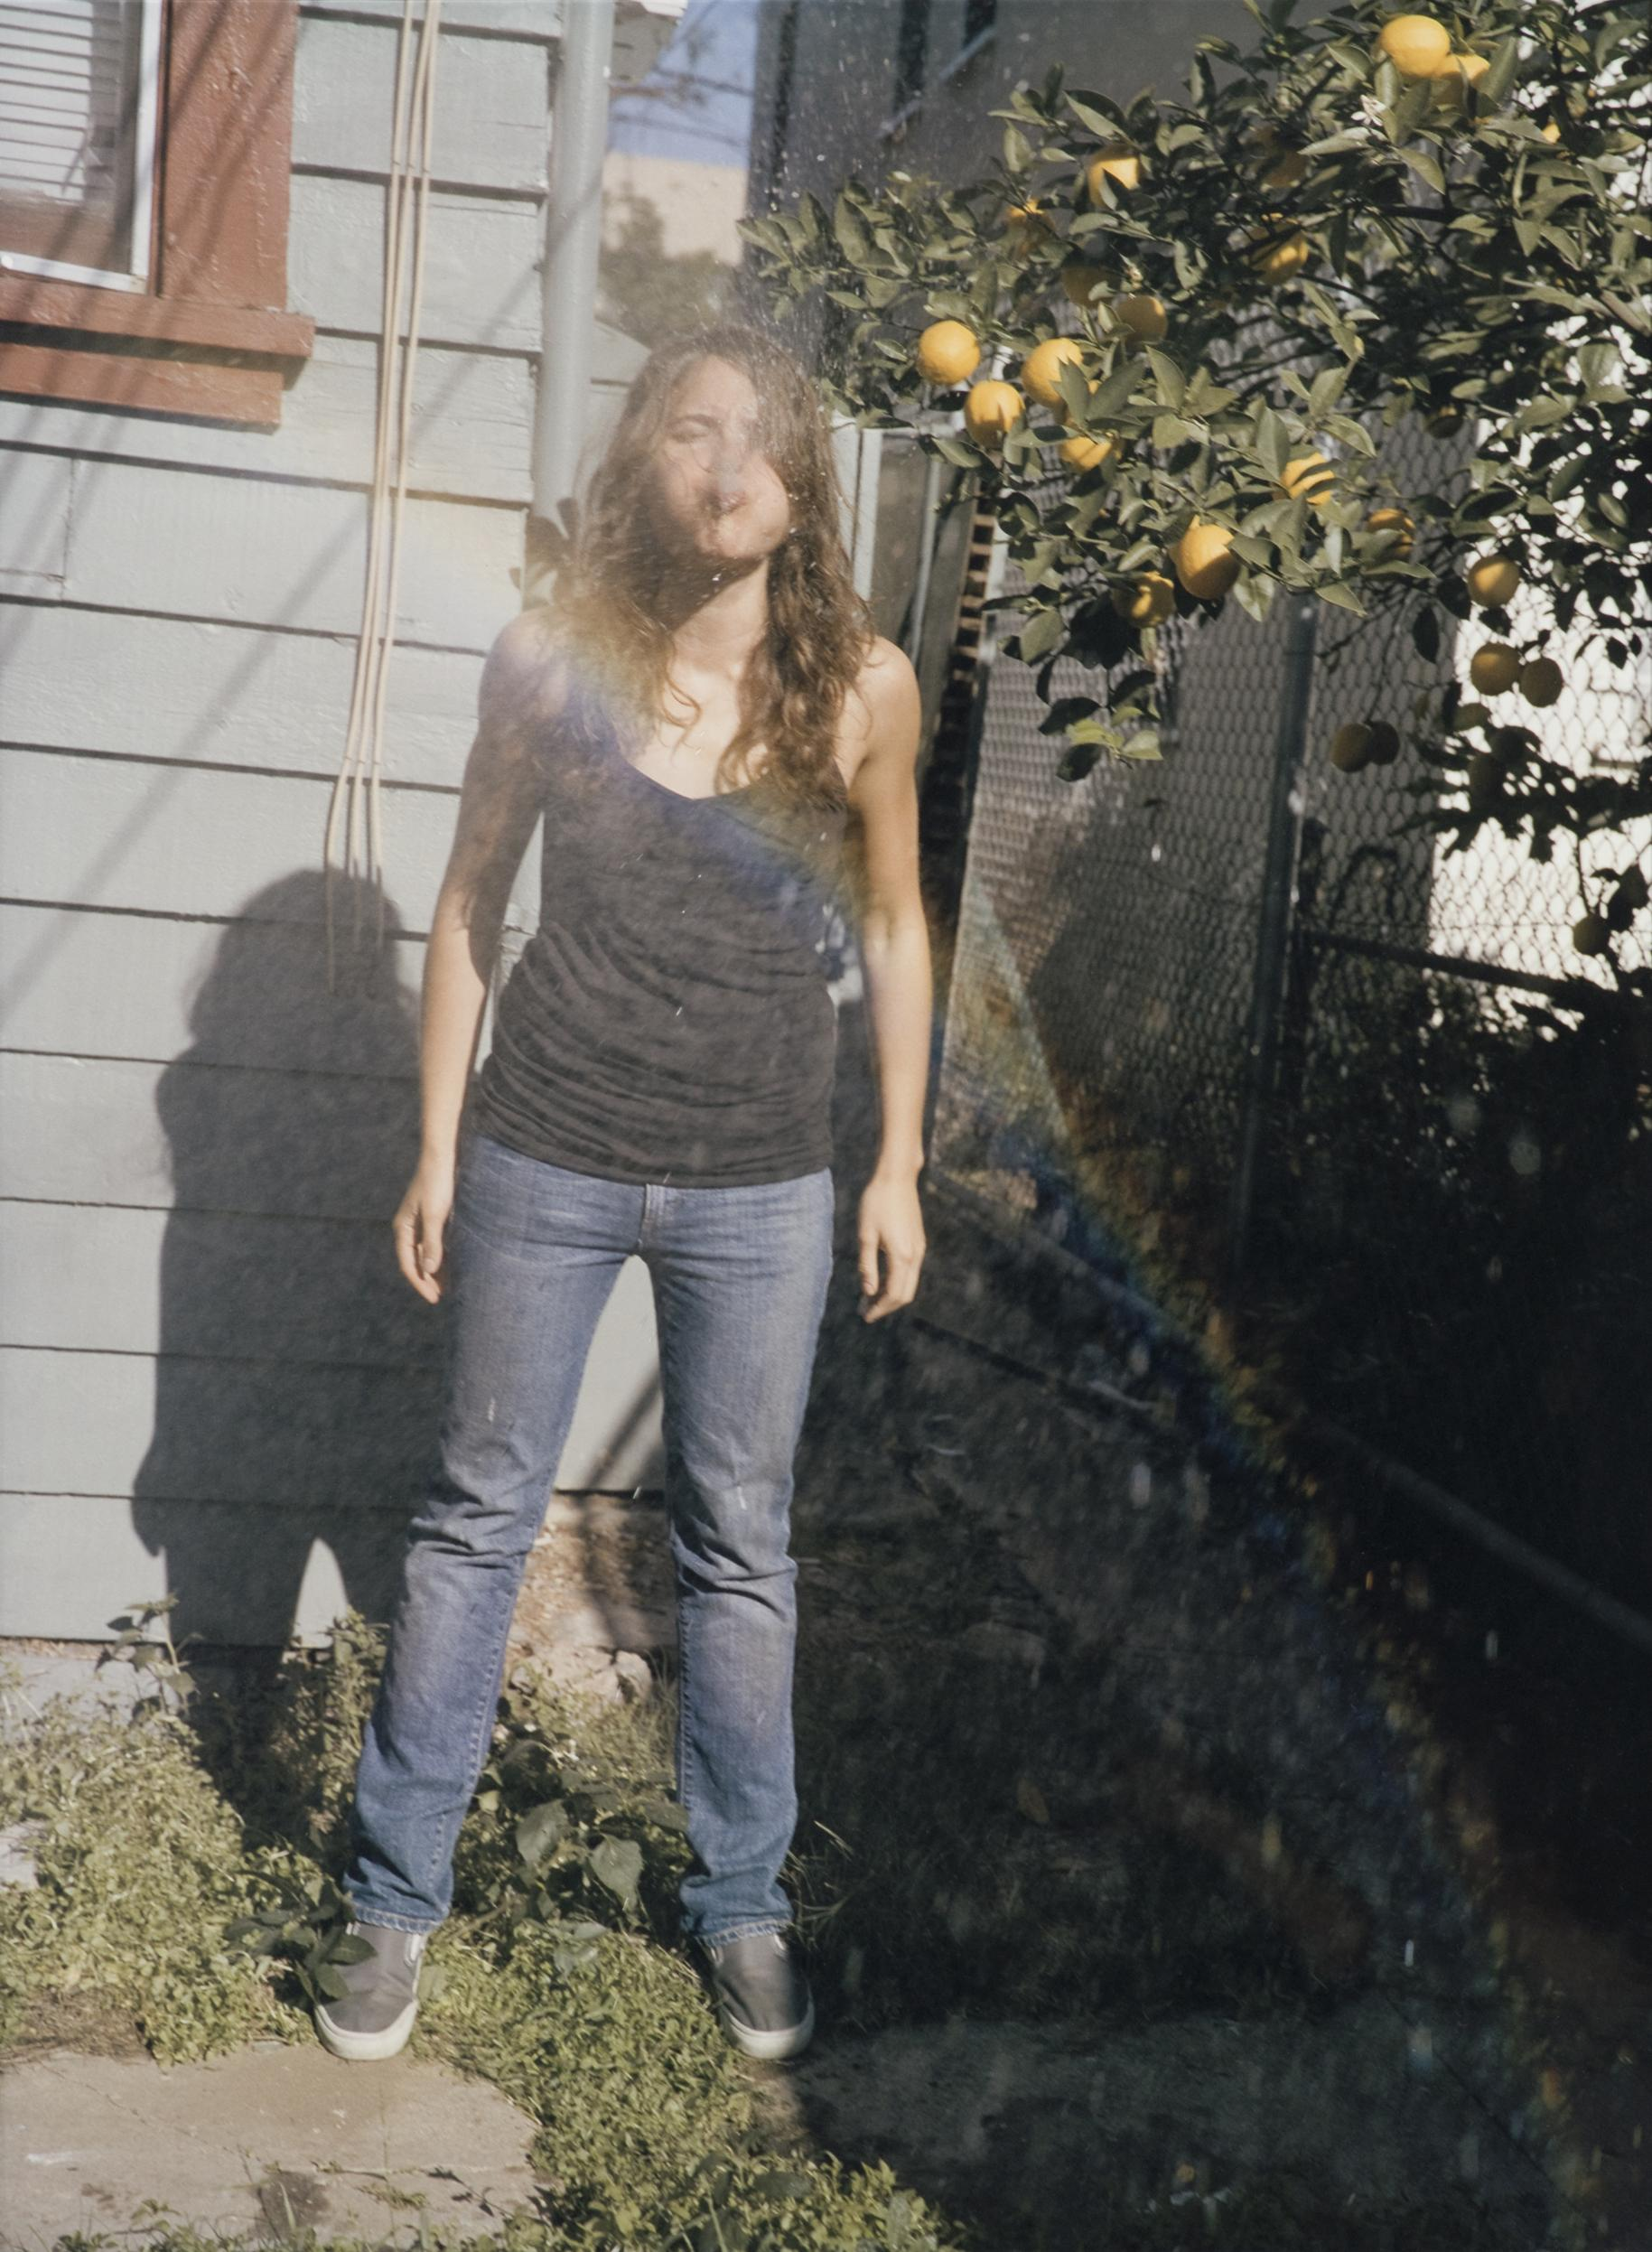 A young woman spits water at you, creating a rainbow through the spray. She stands in a backyard next to a lemon tree.